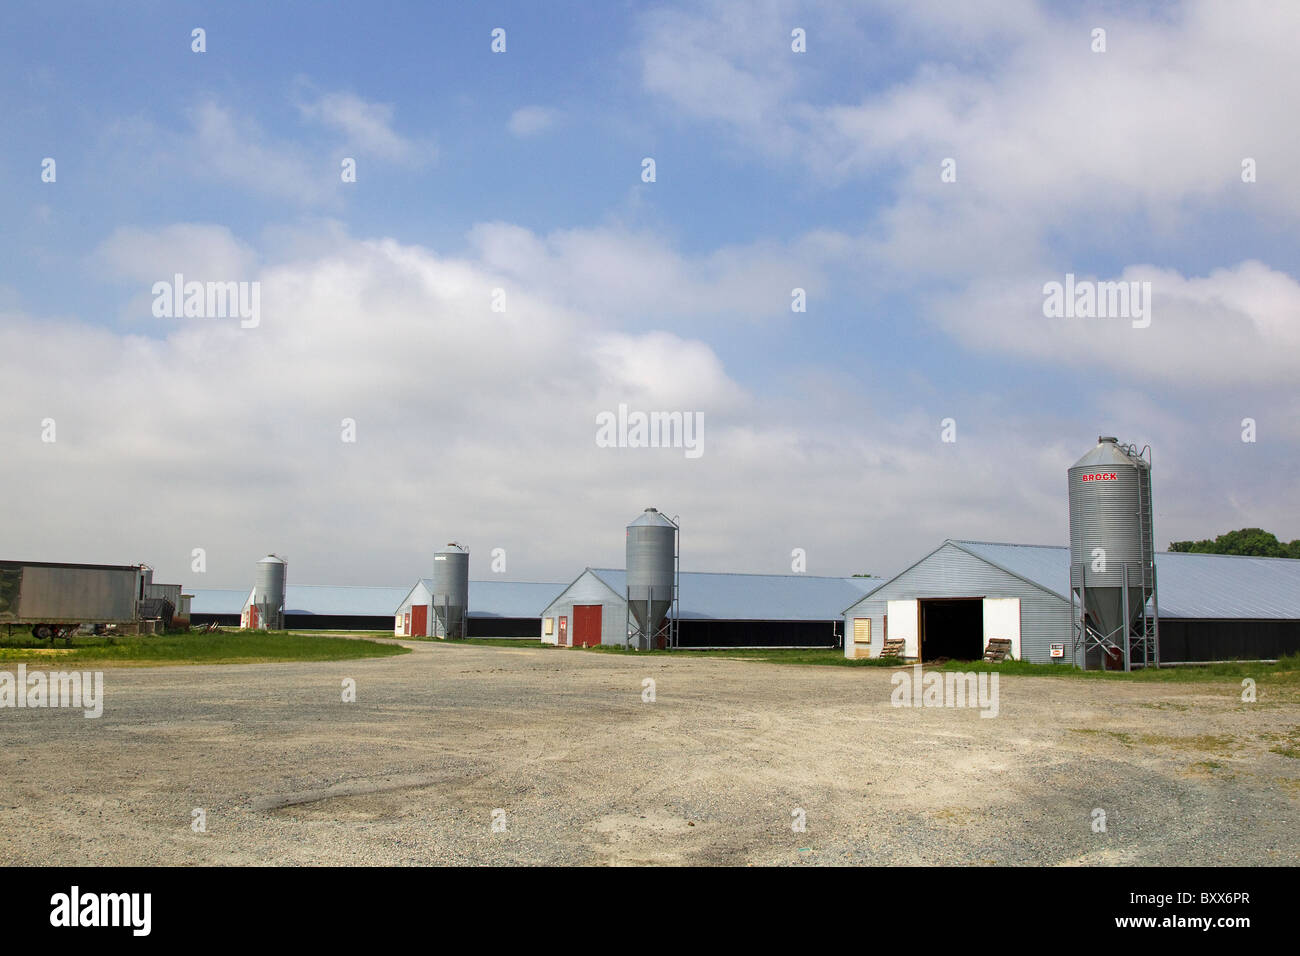 Poultry barns, chicken houses, on factory farm in Temperanceville, Virginia, USA - Stock Image